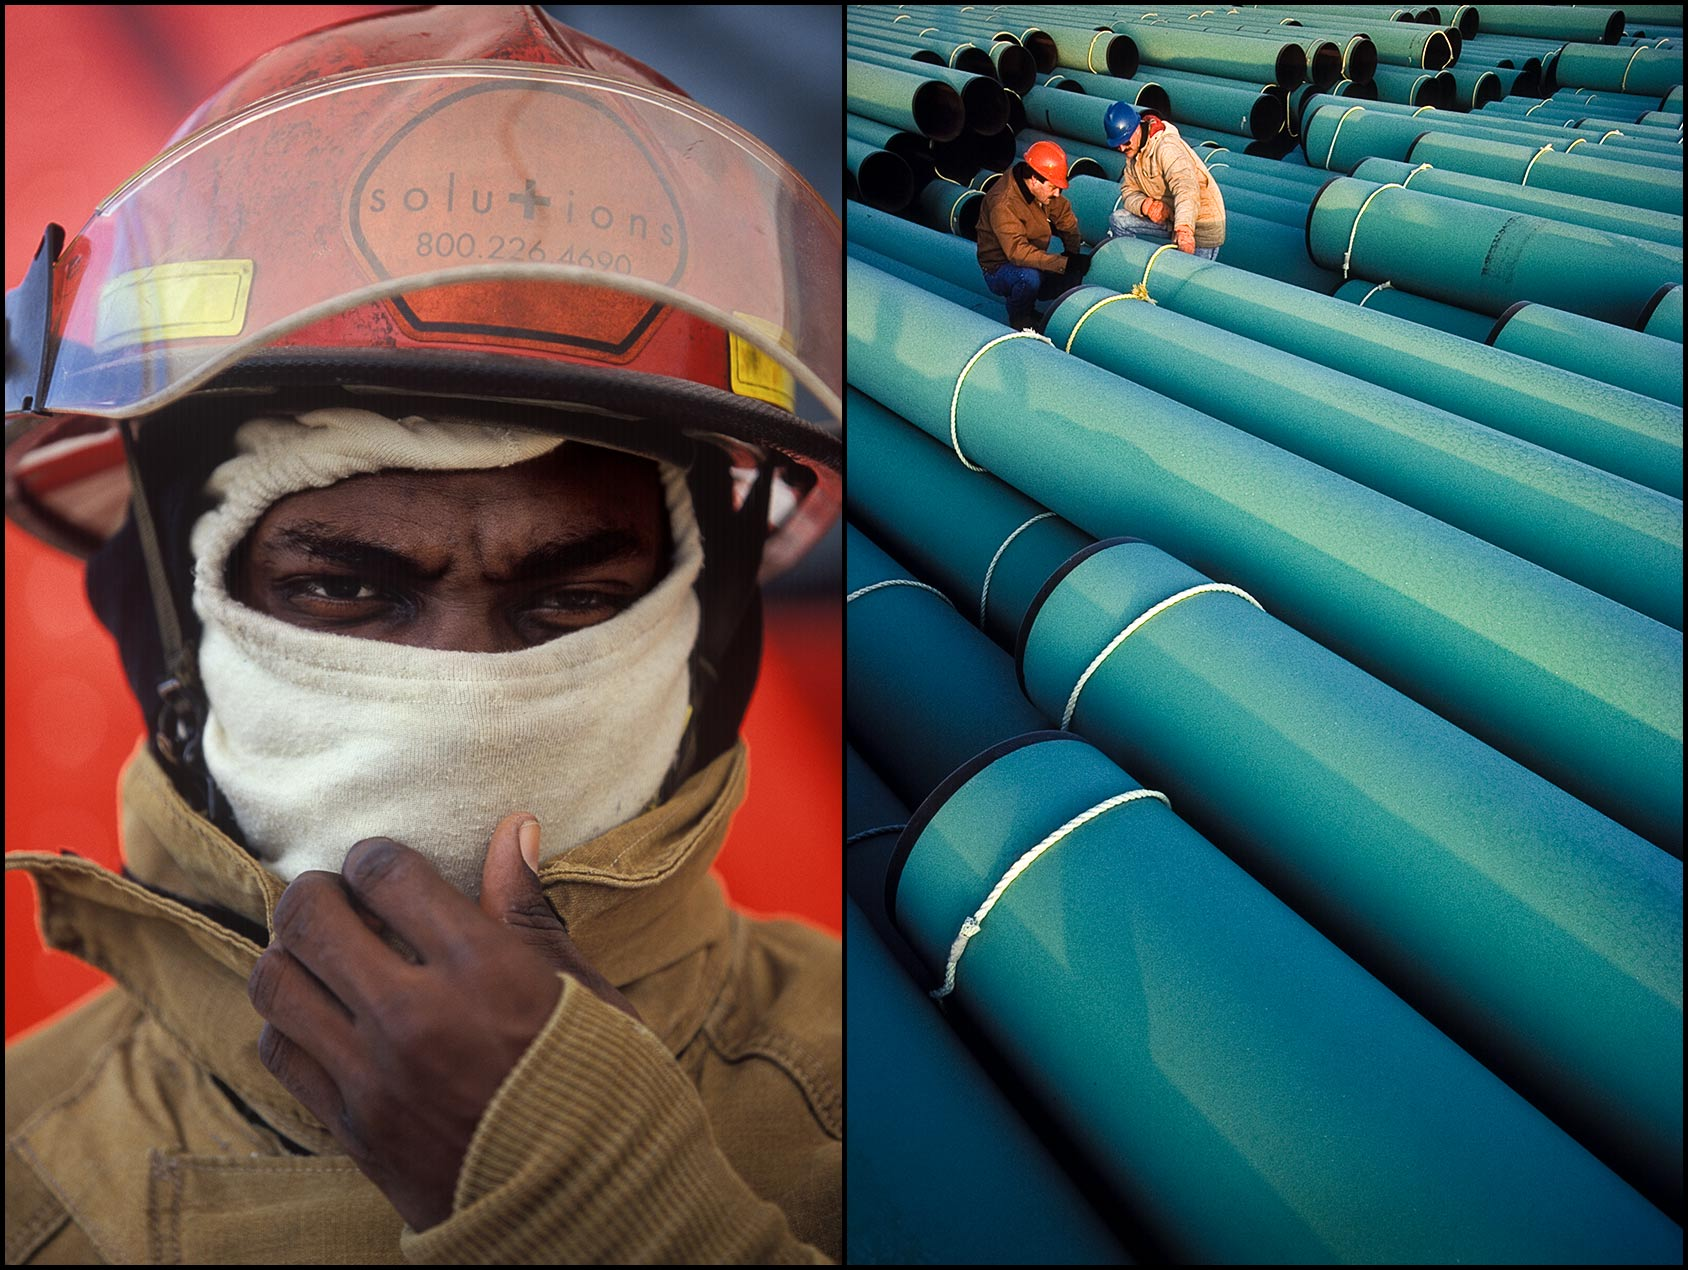 Portrait of a industrial fireman in safety gear (L), Two workers inspect large green pipe sections stacked in a pipe yard (R).